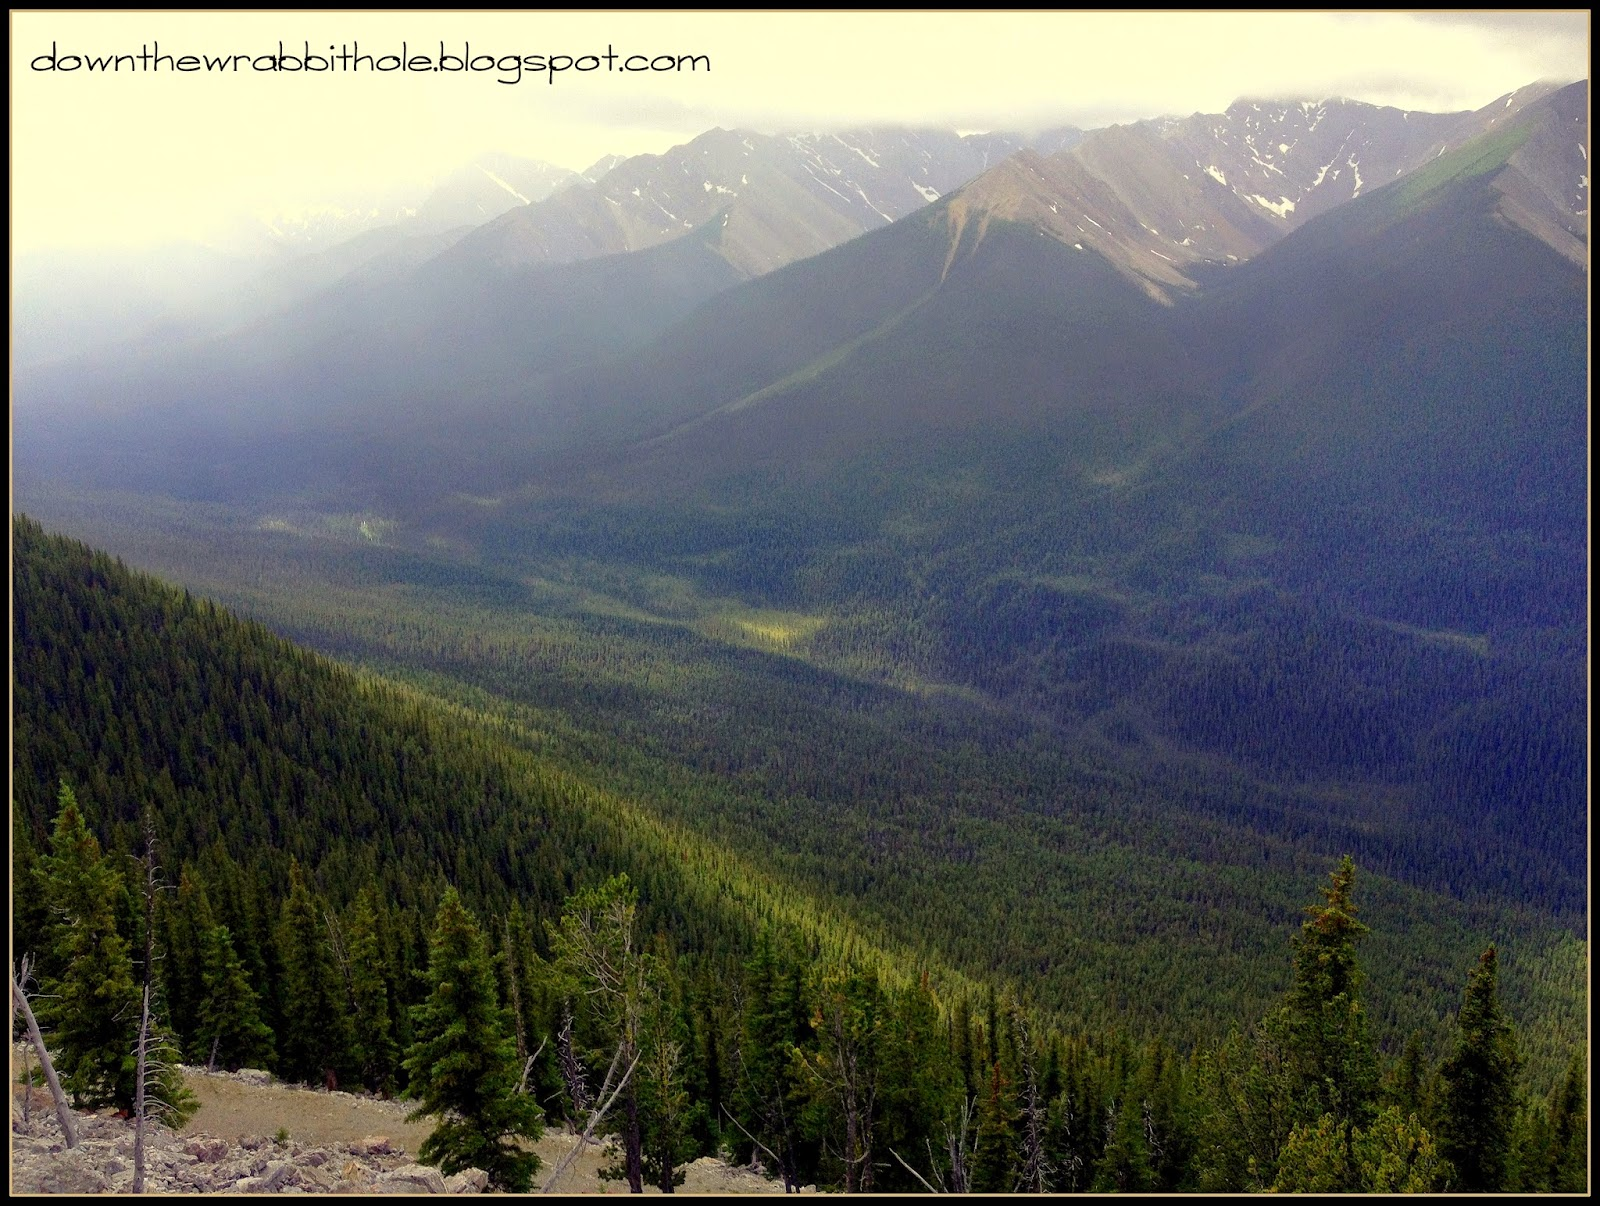 Rocky Mountain trees, Rocky Mountain valley, Banff Gondola, Sulphur Mountain